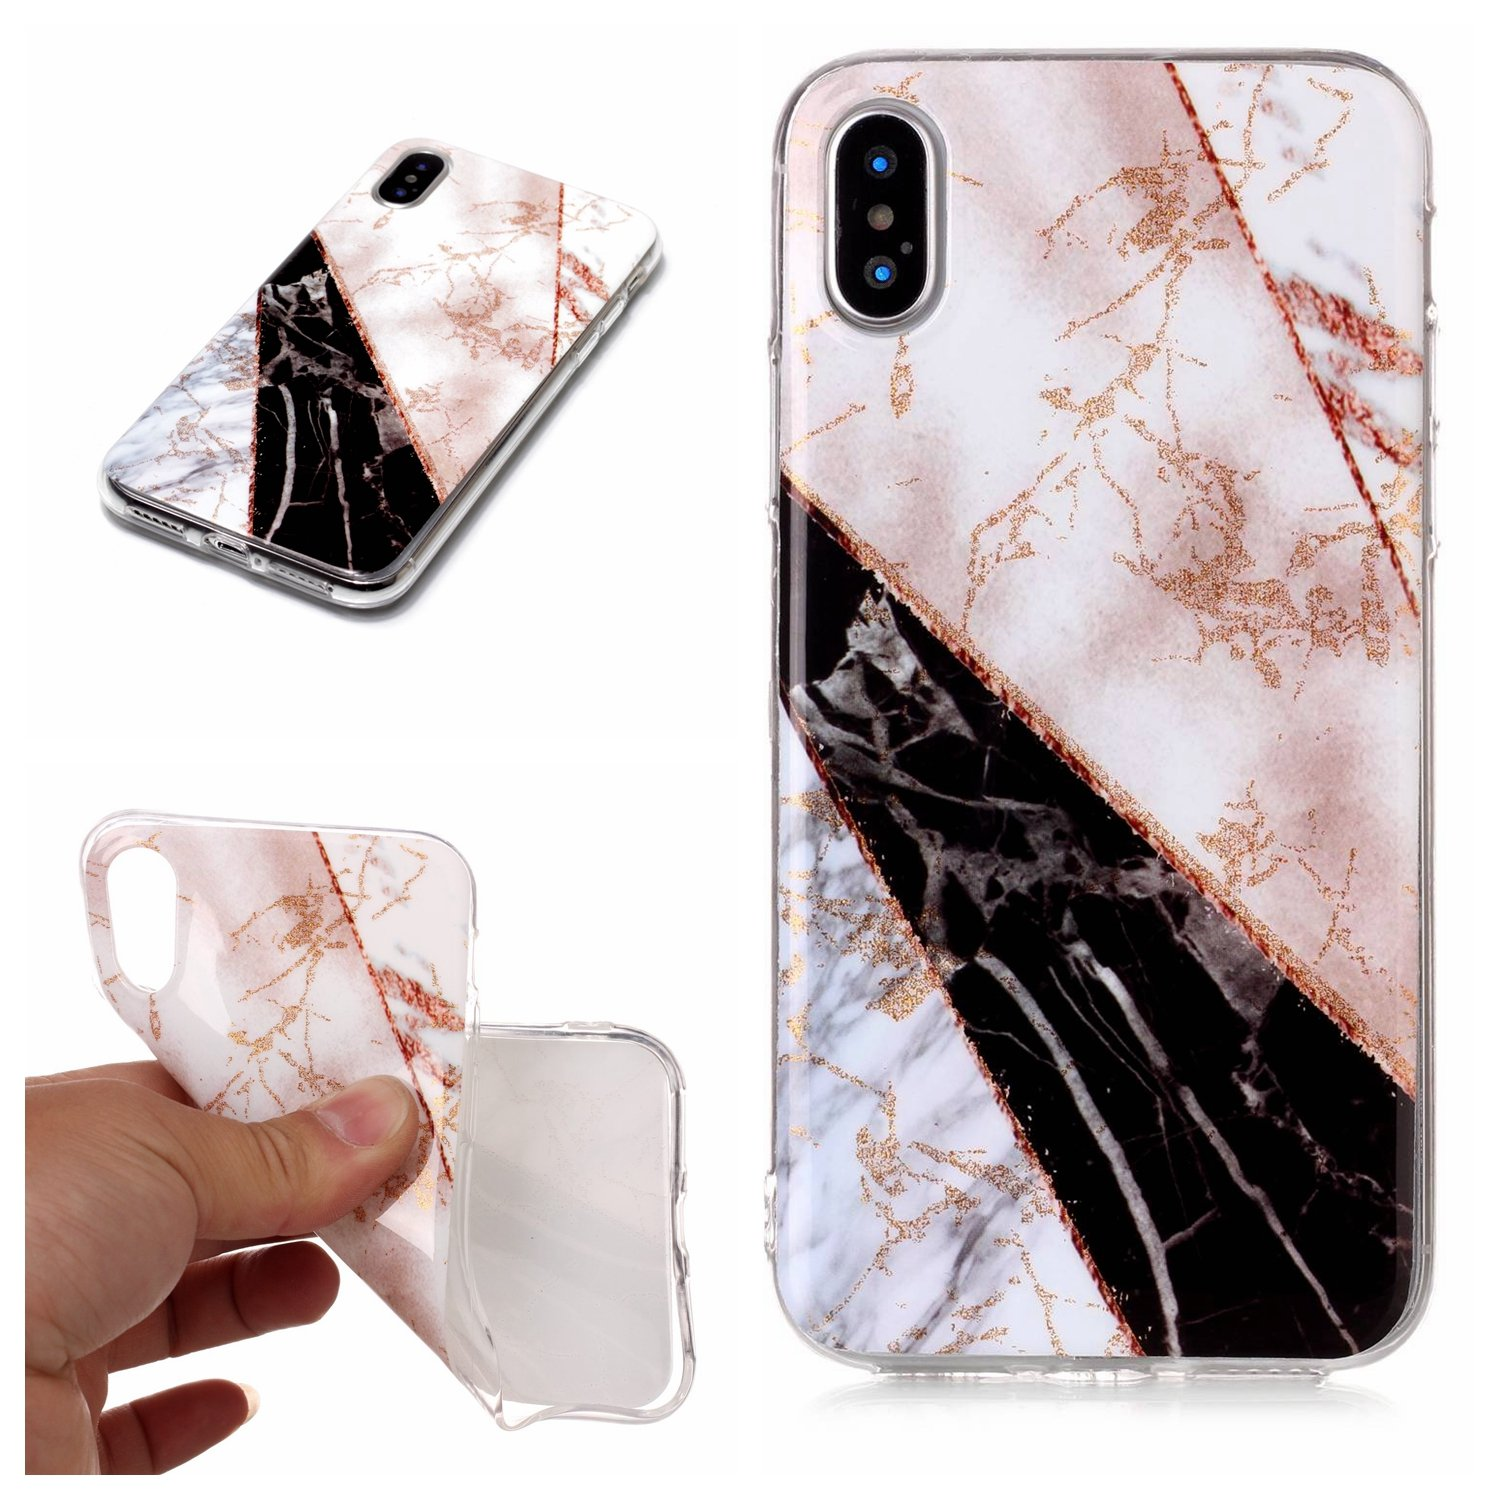 Mistars Silicone Case for iPhone X/ iPhone 10, Luxury Bling Shining Glitter Marble Pattern Design Case Ultra Thin Anti-Scratch Shockproof Protective TPU Soft Gel Case Rubber Skin Cover Bumper for Apple iPhone X / 10 (5.8 inch) (White and Black)